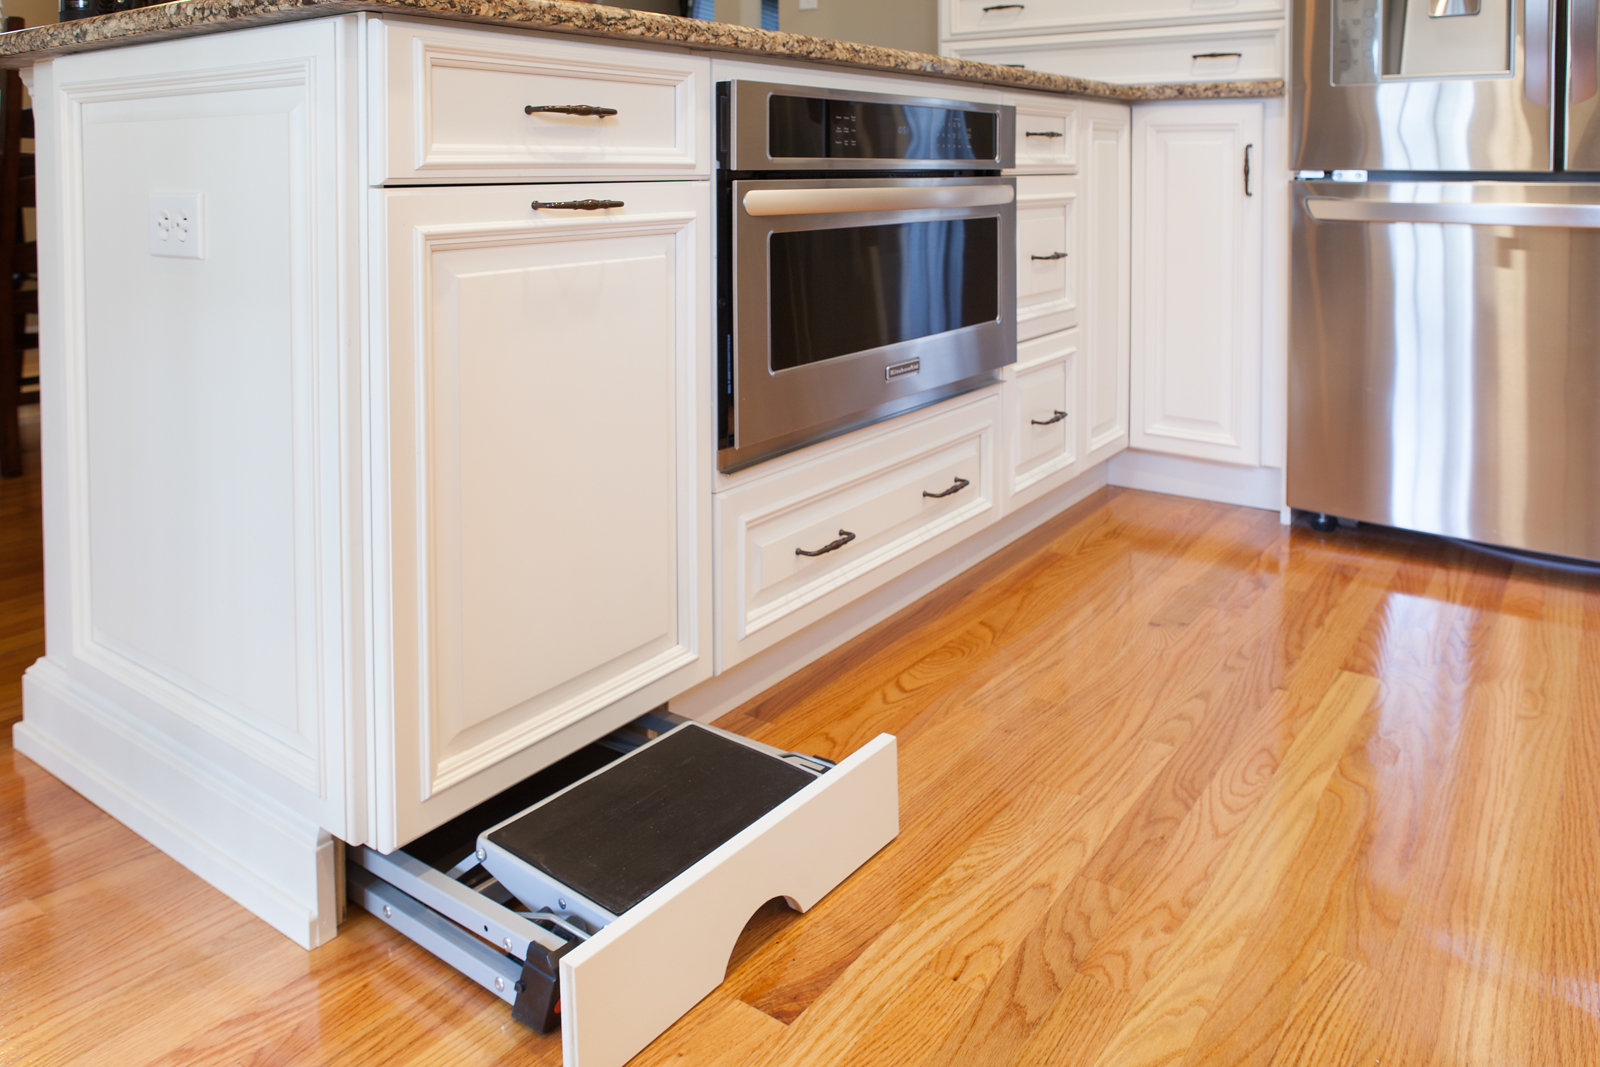 Toe Kick Step Stool Installed in a Robinwood Kitchens Project  (Photo Credit: Robinwood Kitchens)